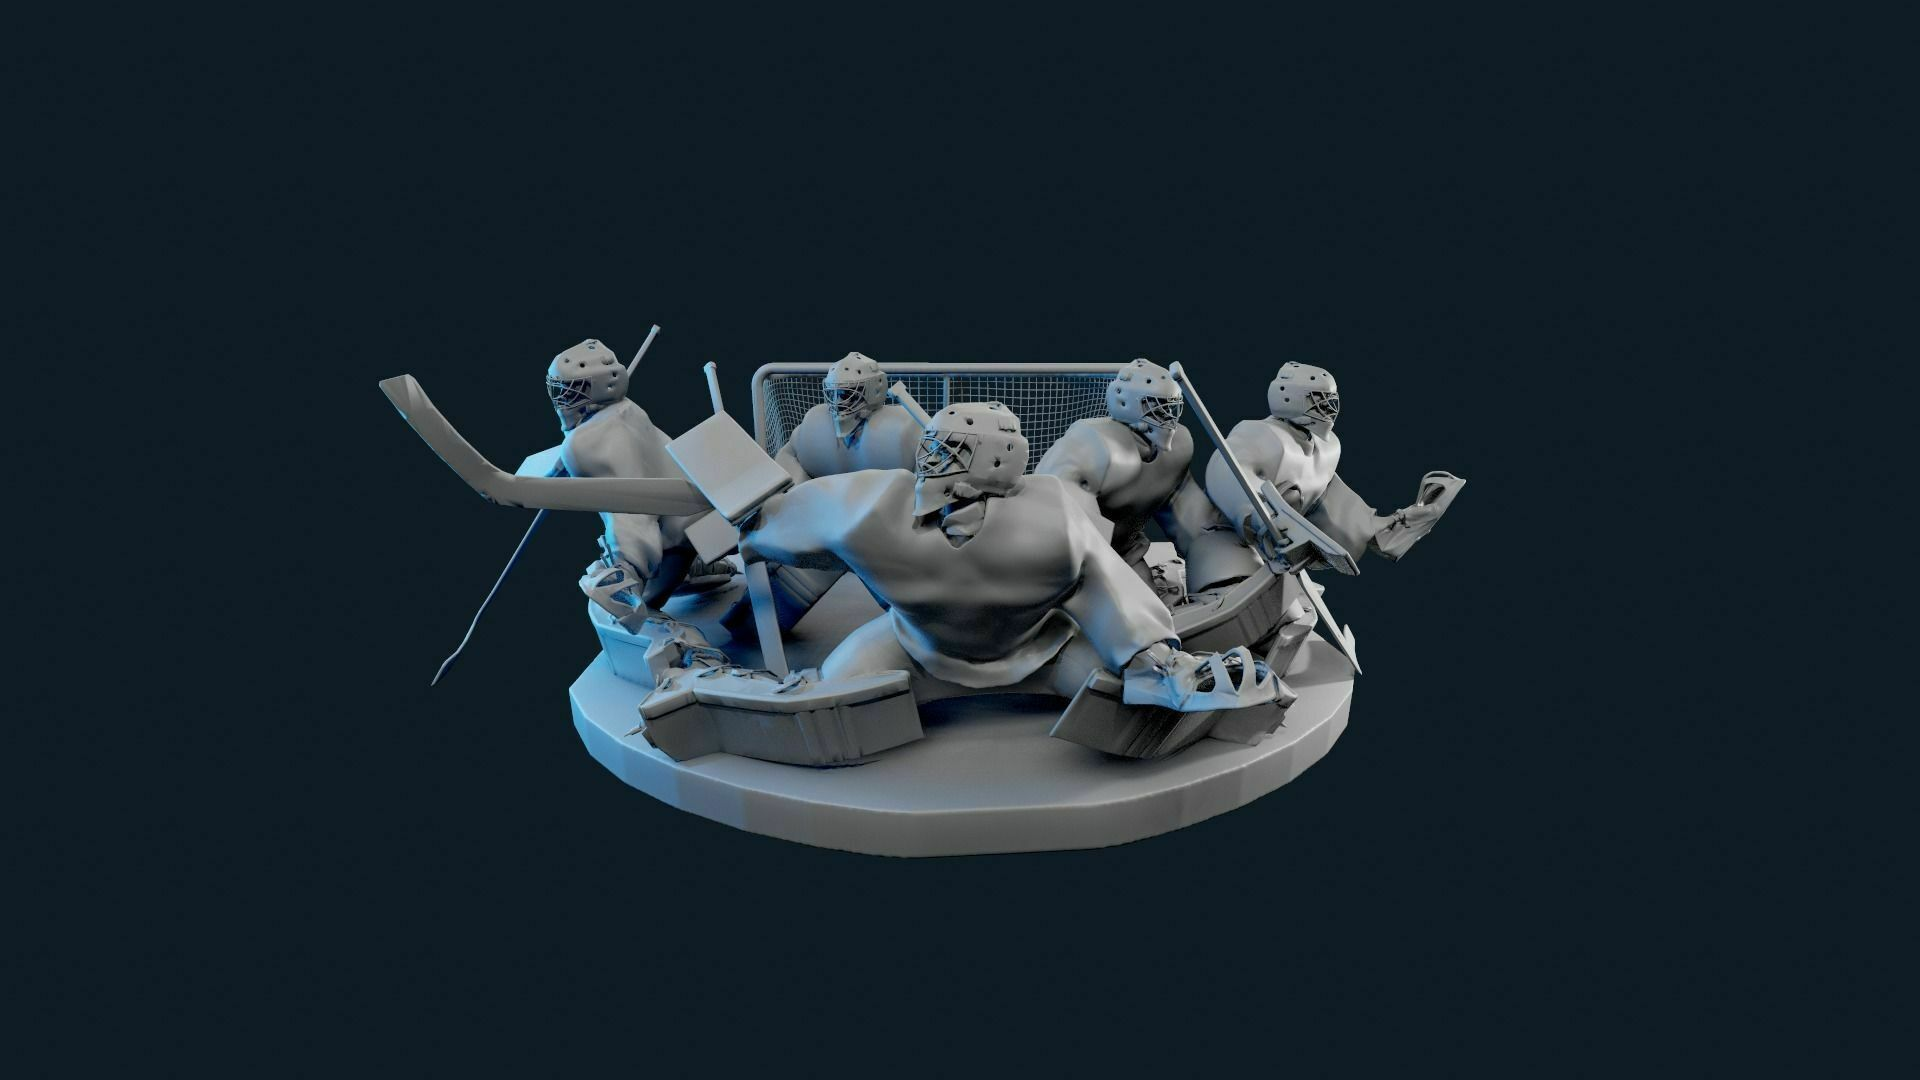 ultimate-hockey-poses-pack-model-no-texture-3d-model-max-obj-fbx-stl-tbscene (4).jpg Download OBJ file ULTIMATE HOCKEY POSES PACK MODEL NO TEXTURE 3D Model Collection • 3D printing template, NightCreativity